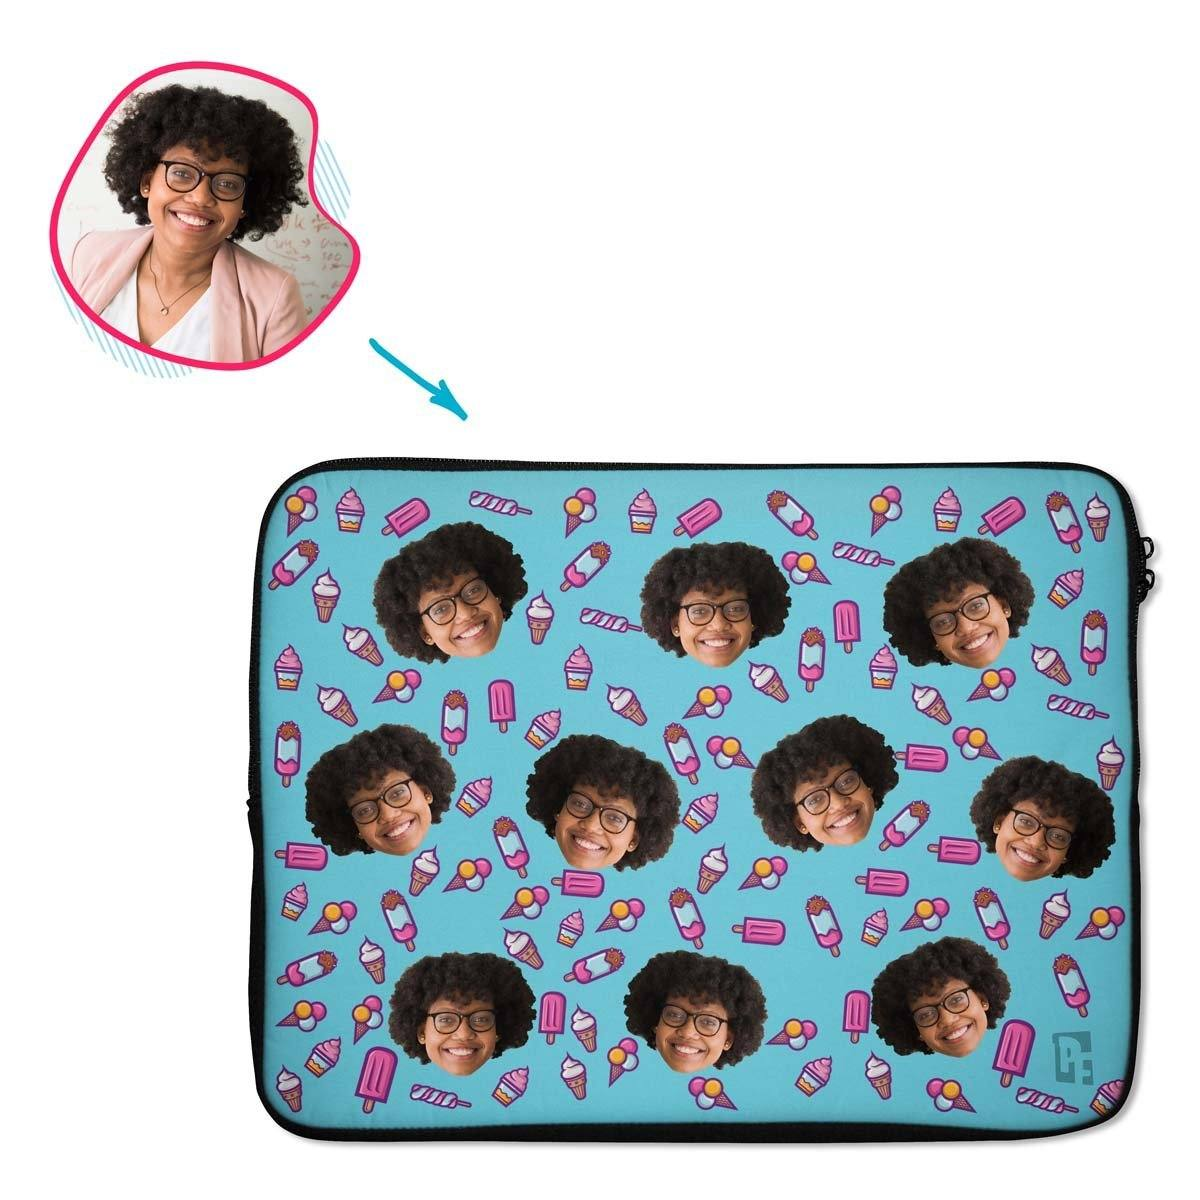 blue Candies laptop sleeve personalized with photo of face printed on them